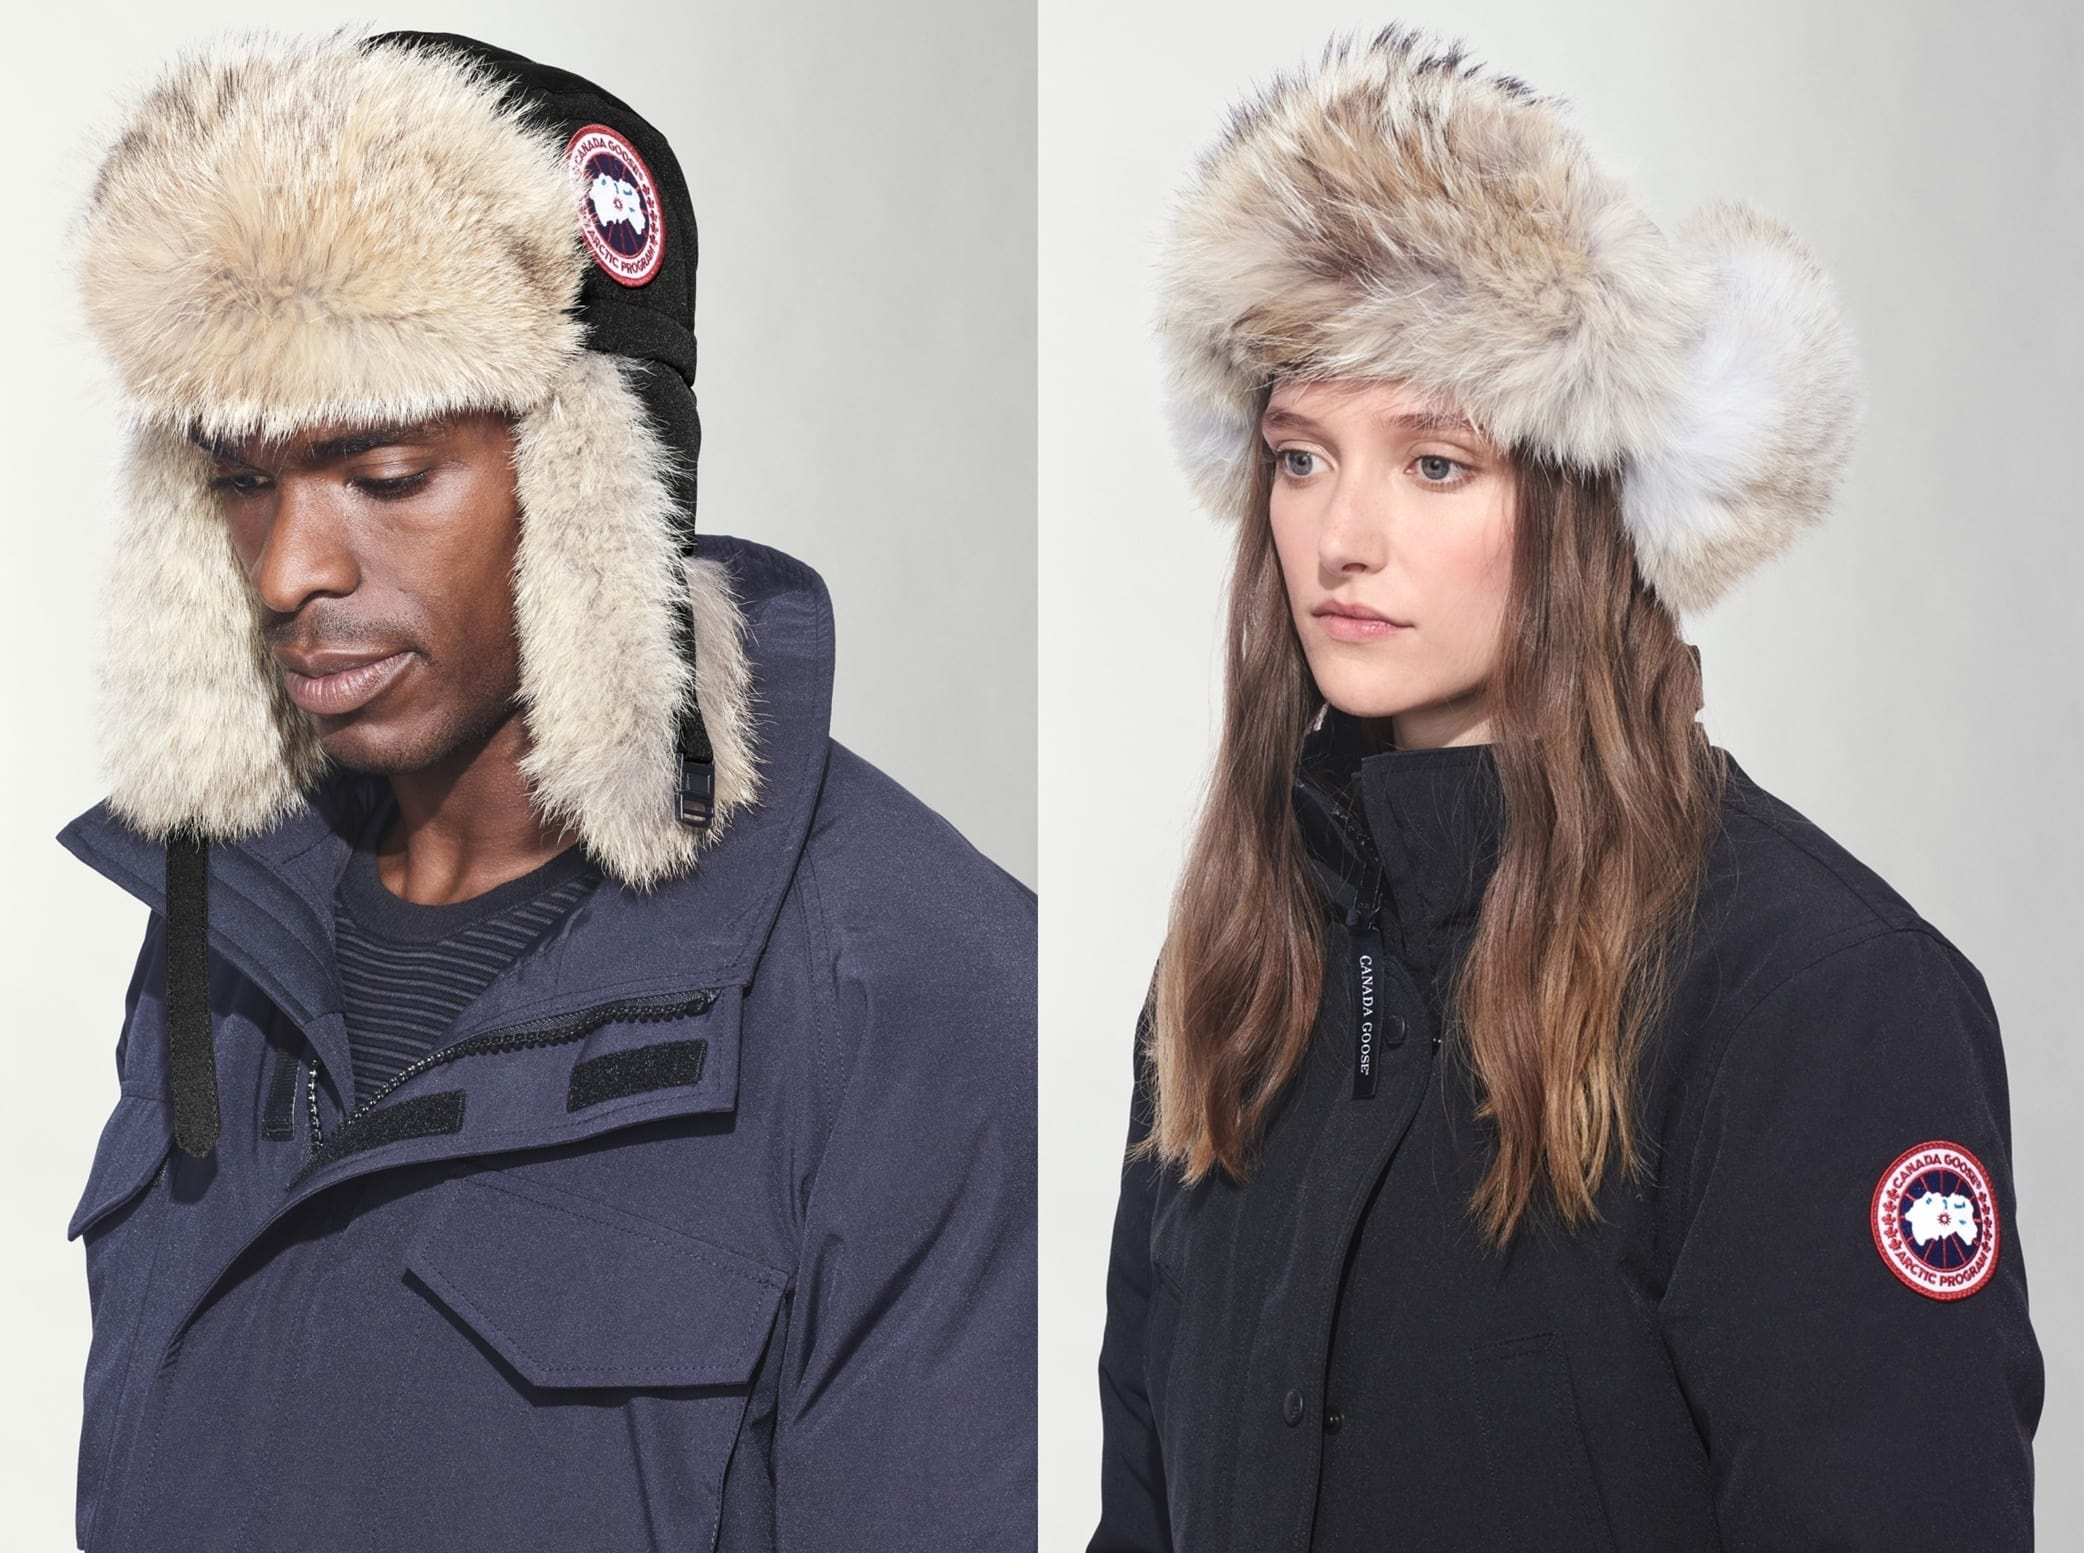 Sumptuous, genuine coyote fur warms the ruff visor and earflaps of a classic aviator hat filled with cozy down